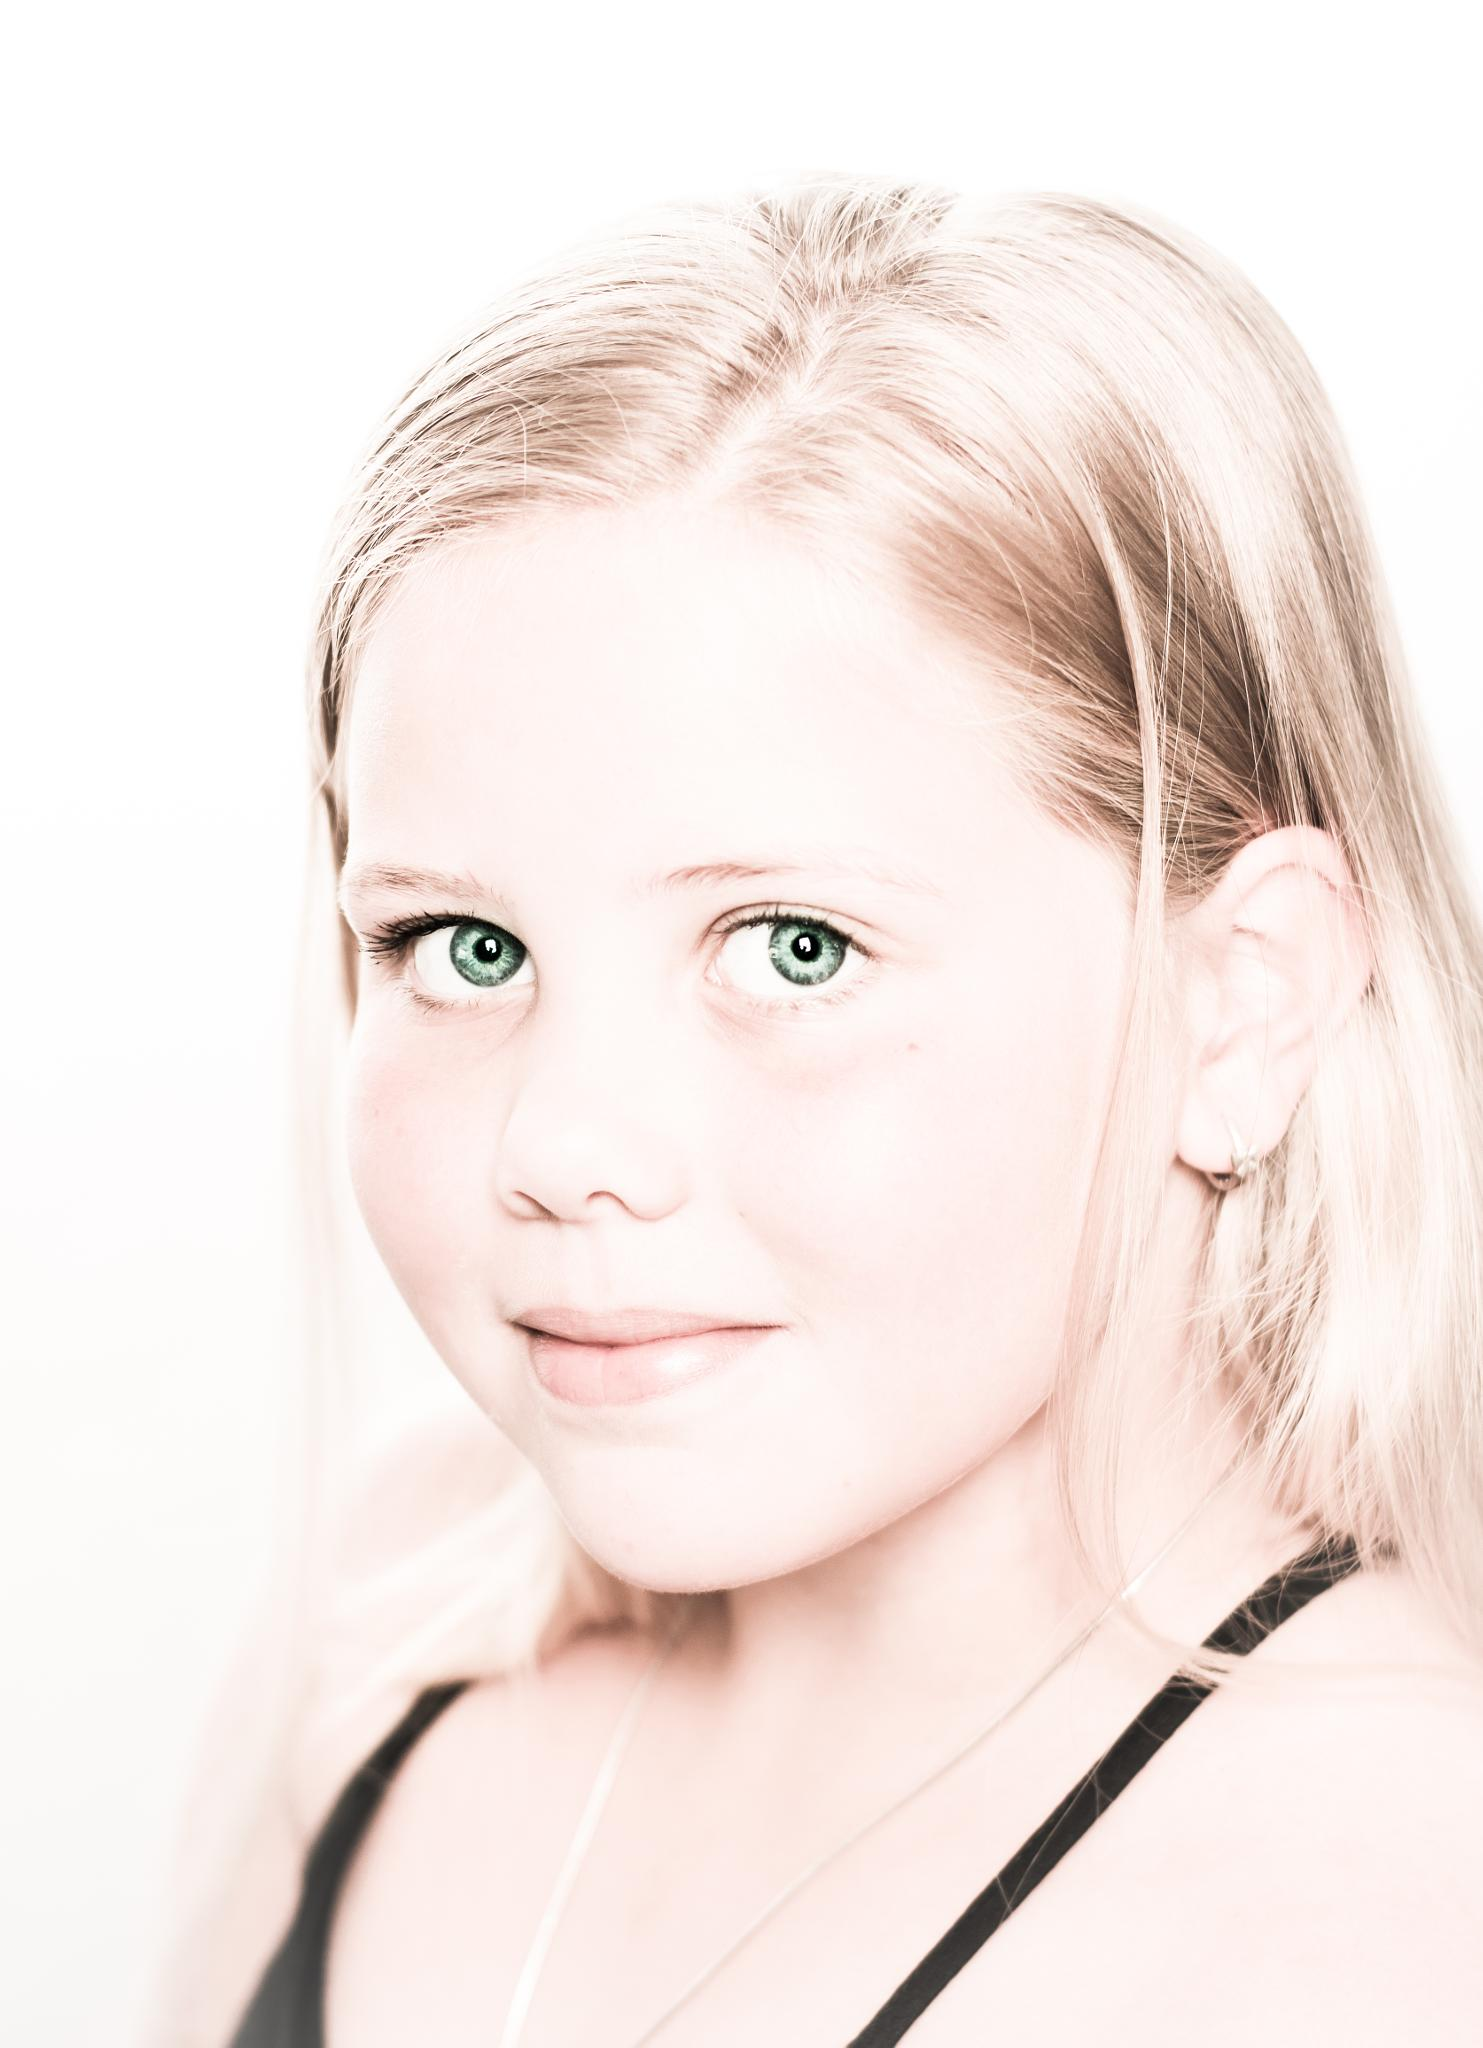 high key portrait by Marcel van Oosterhout